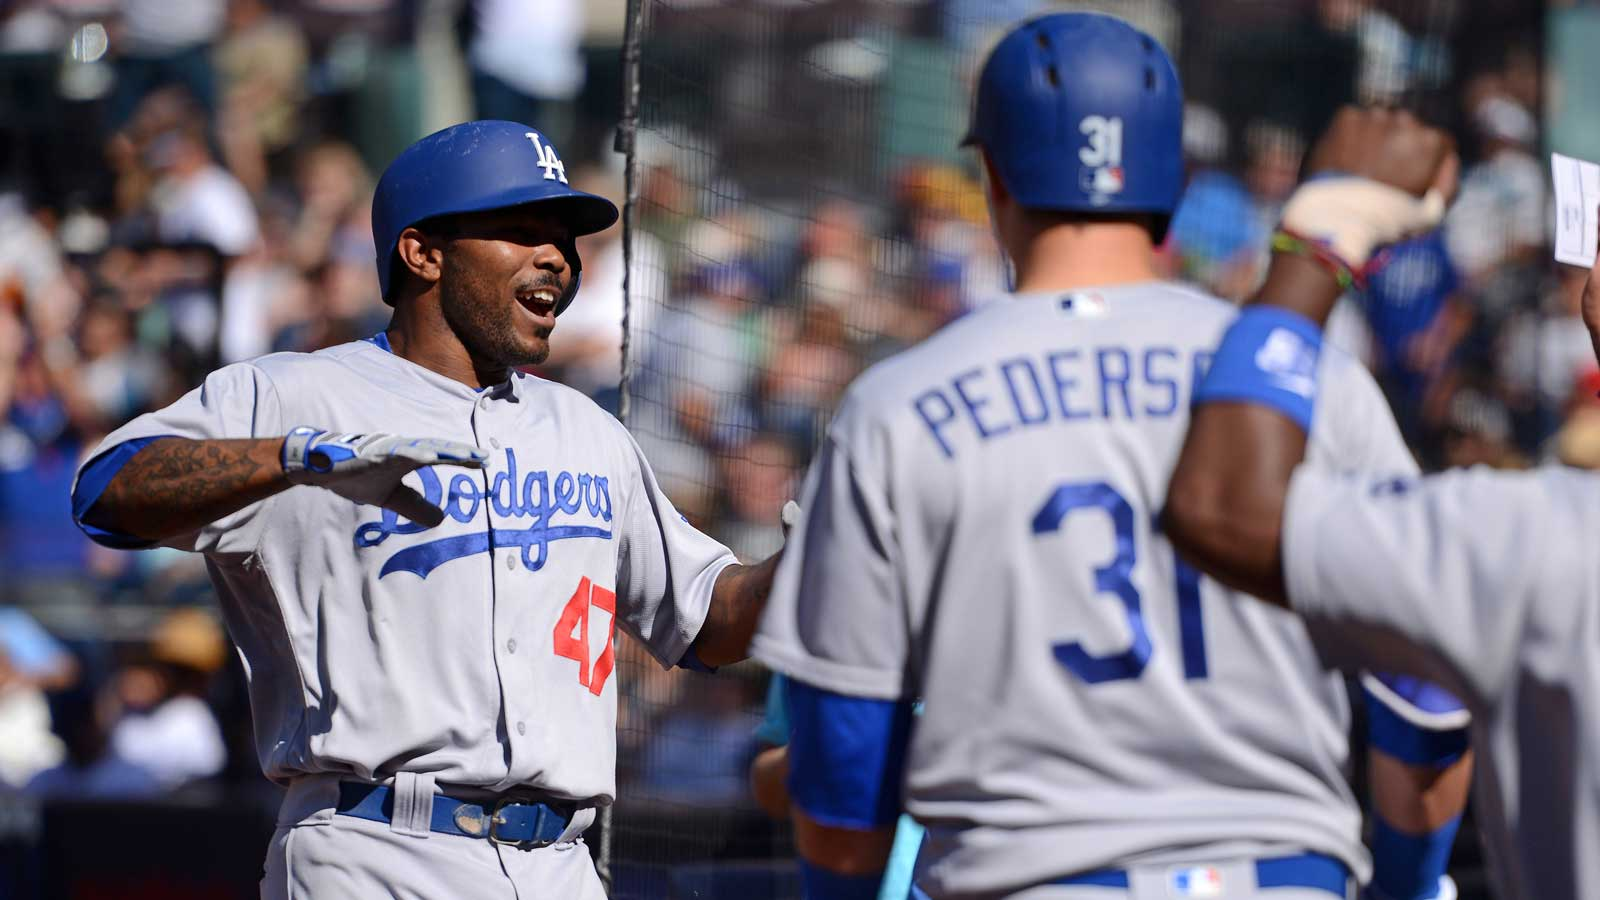 Rookie Perdomo tough-luck loser in 9-5 defeat to Dodgers